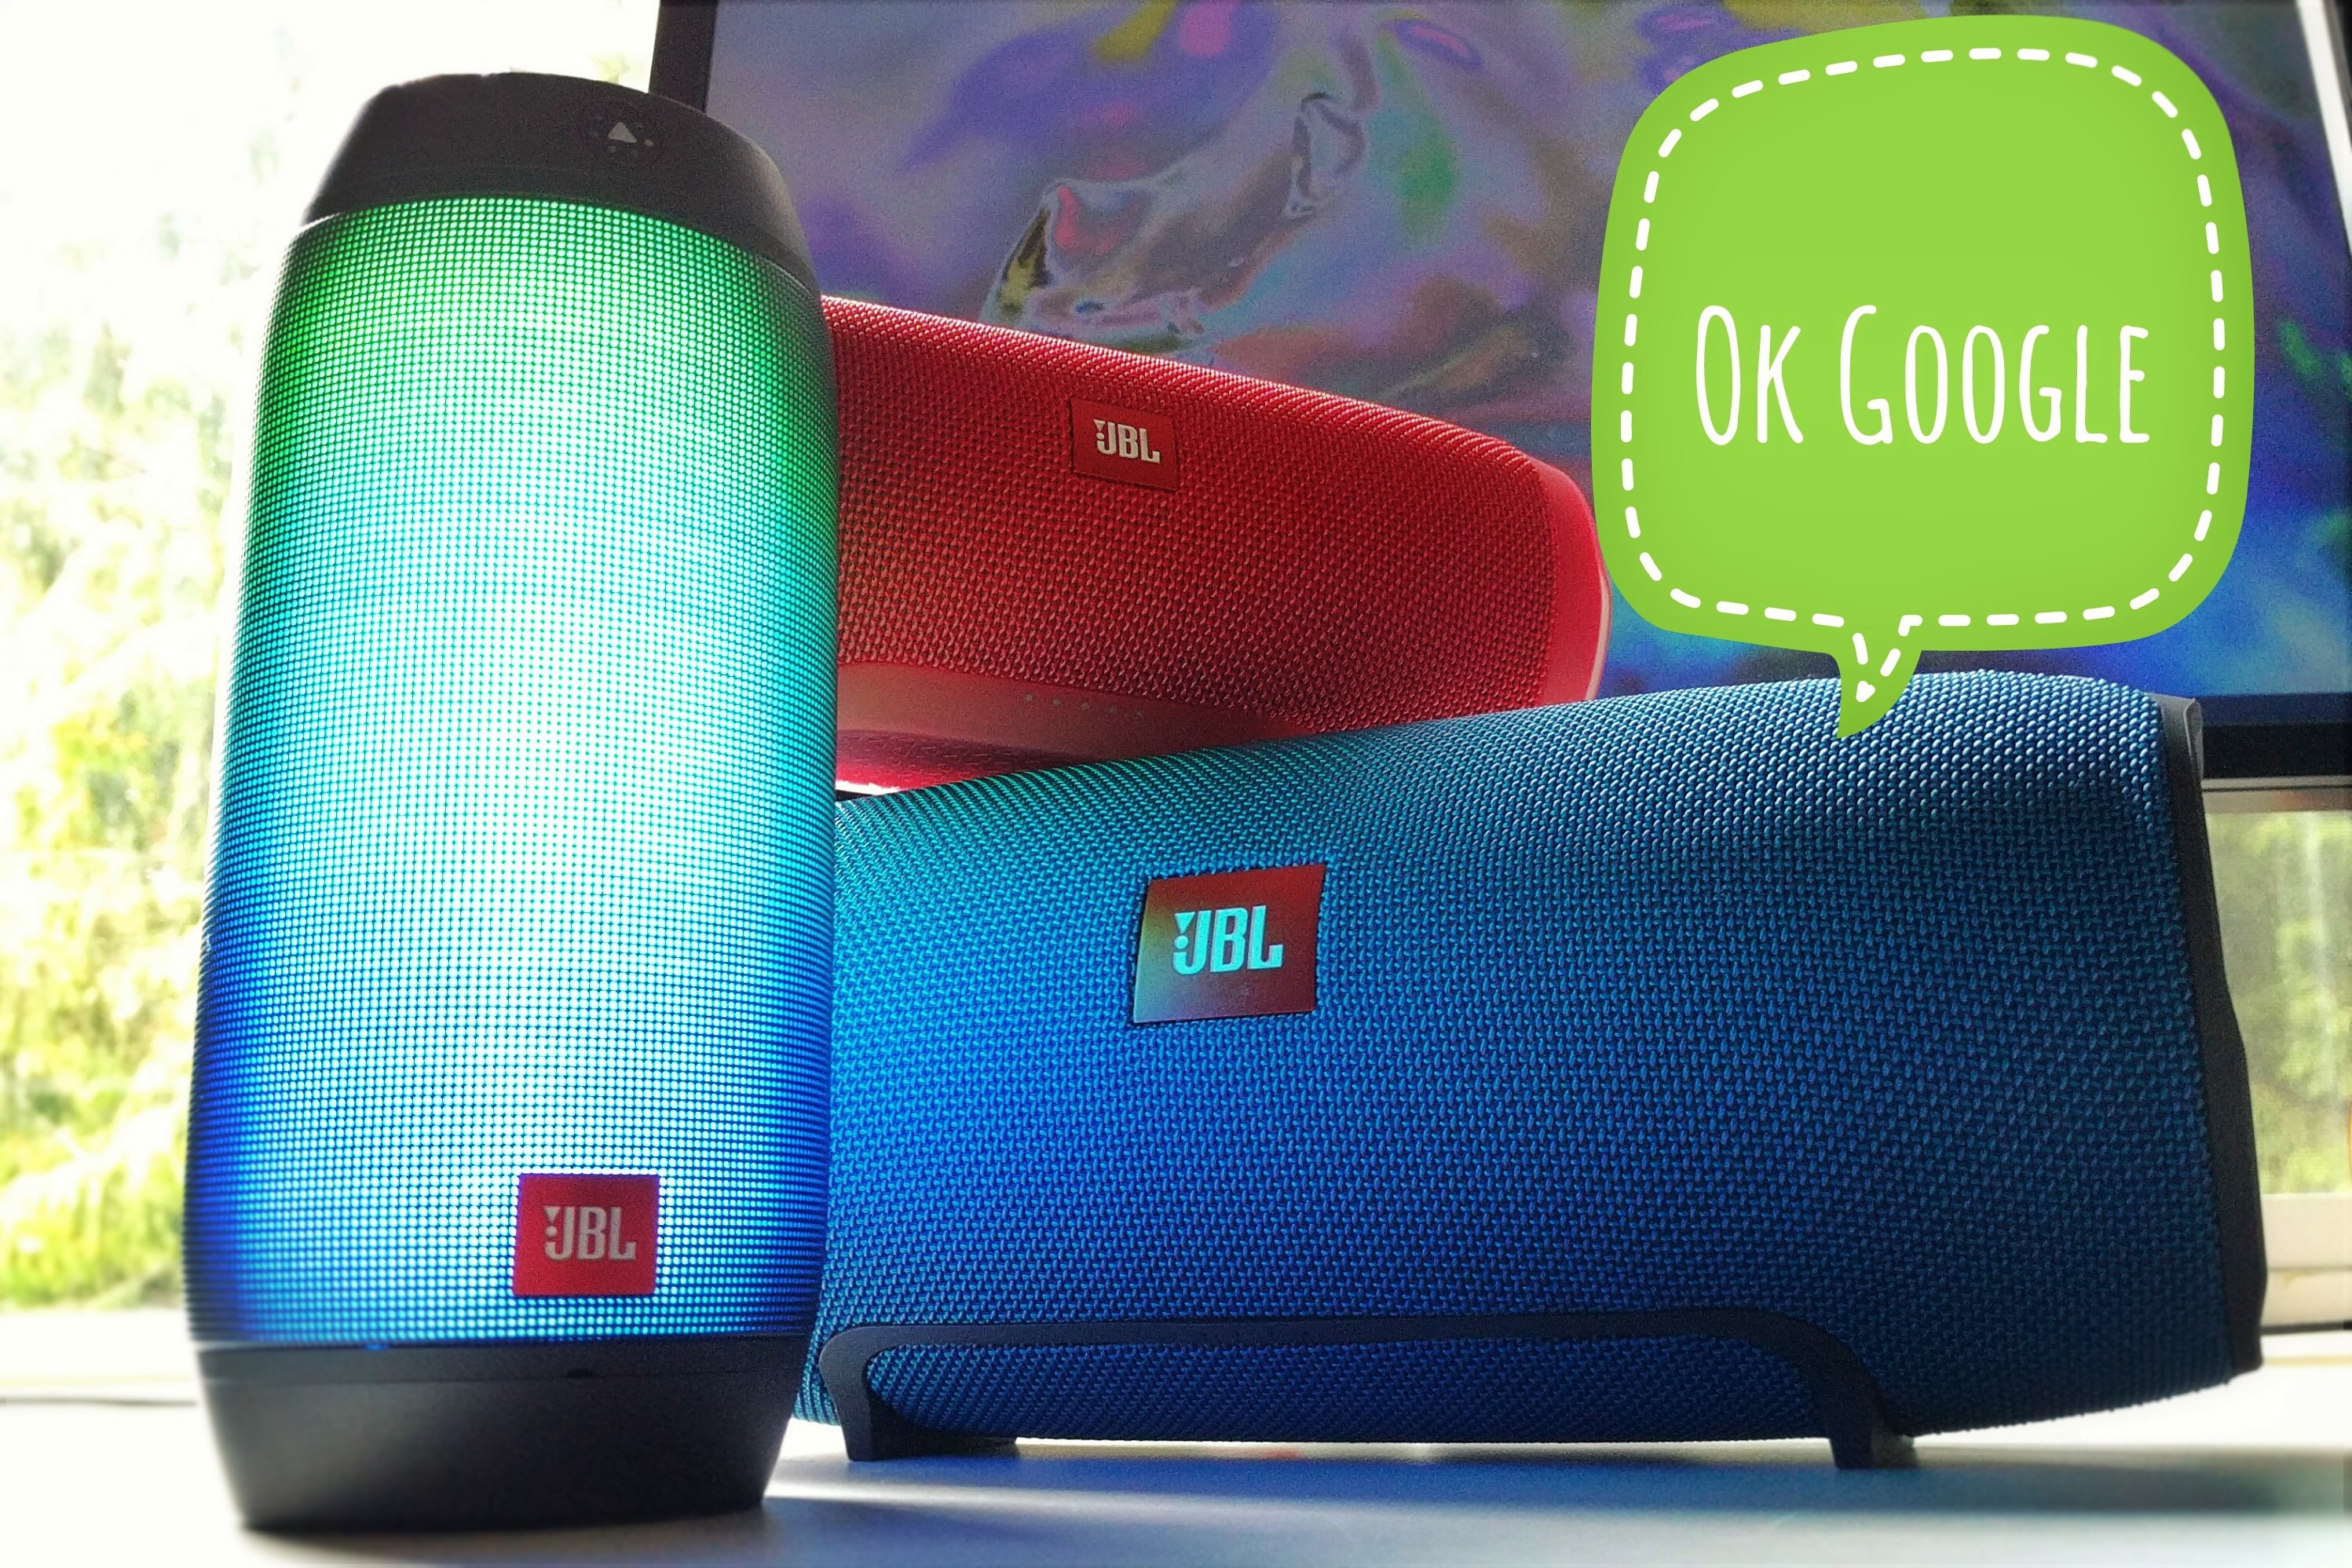 JBL updates its latest generation of speakers with Google